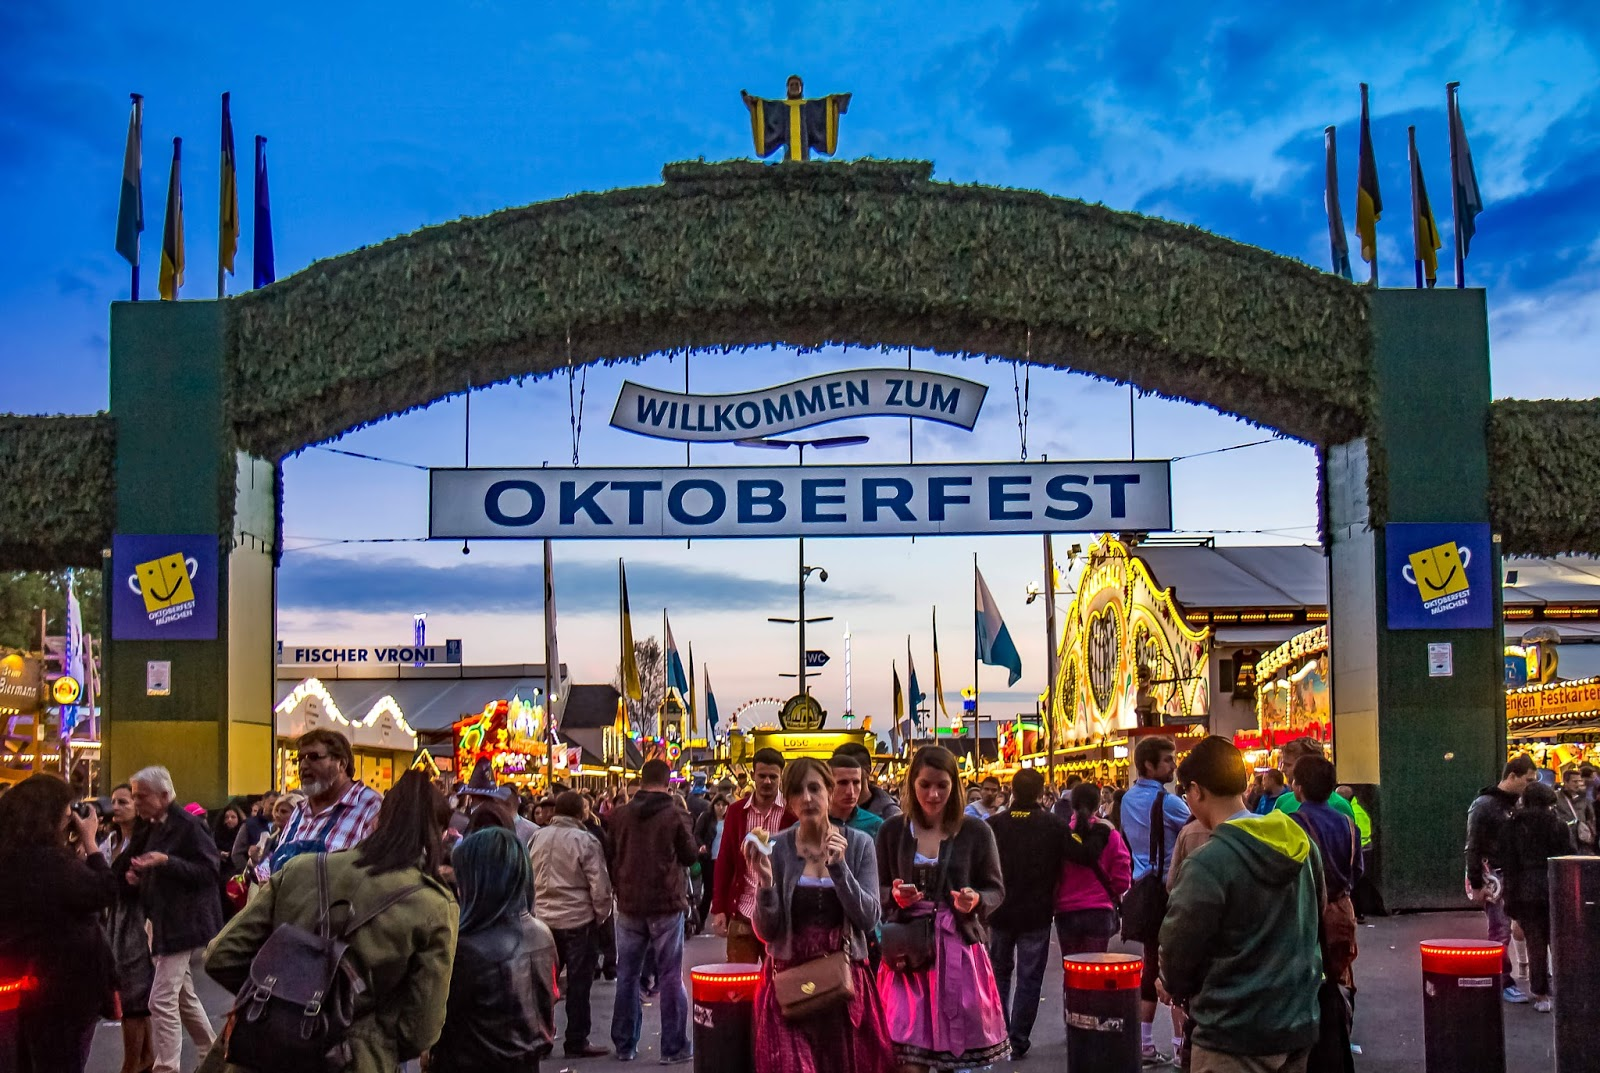 Oktoberfest tent & Top Beer Tents at Oktoberfest 2017 - Hop On and Hop Off